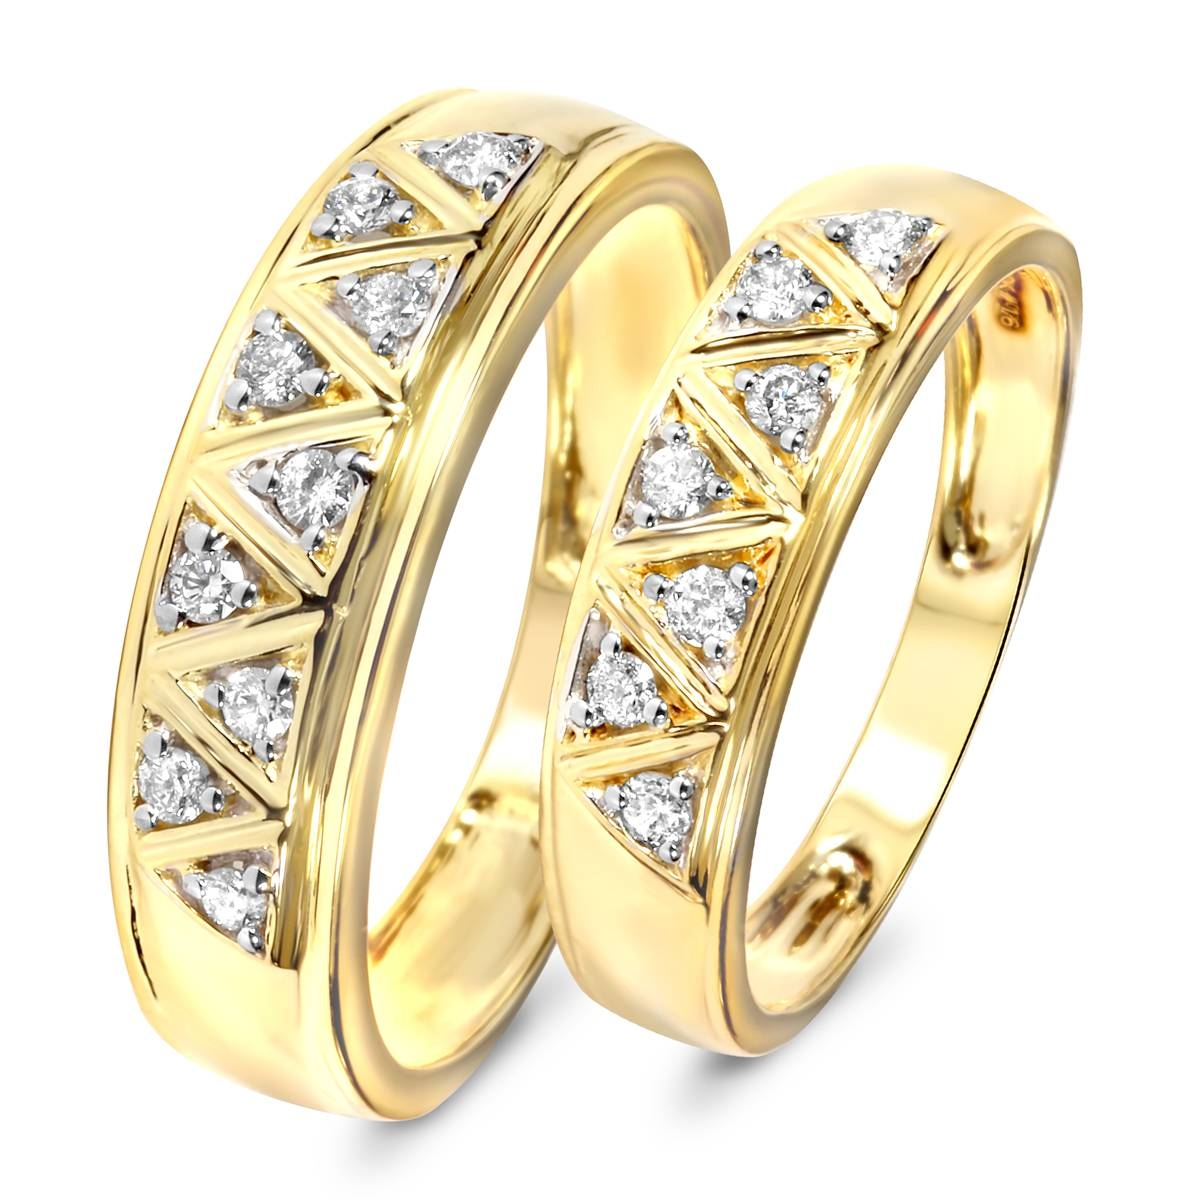 1/3 Carat T.w. Diamond His And Hers Wedding Band Set 10K Yellow Gold Within Most Recently Released Yellow Gold Wedding Band Sets (Gallery 2 of 15)